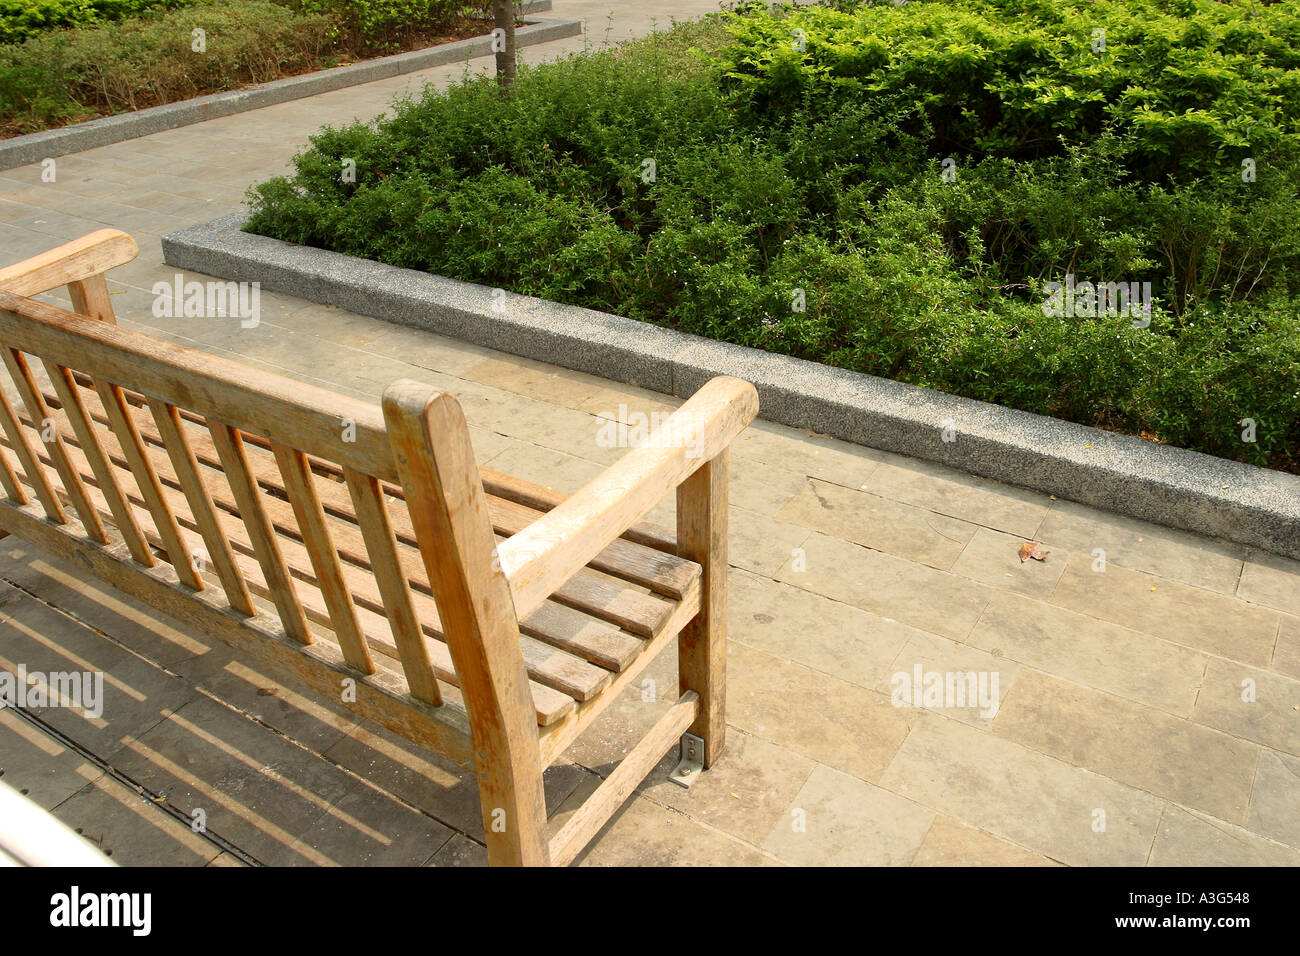 Wood Chair Garden Old Clean Andscape Peaceful Placid Stock Photo